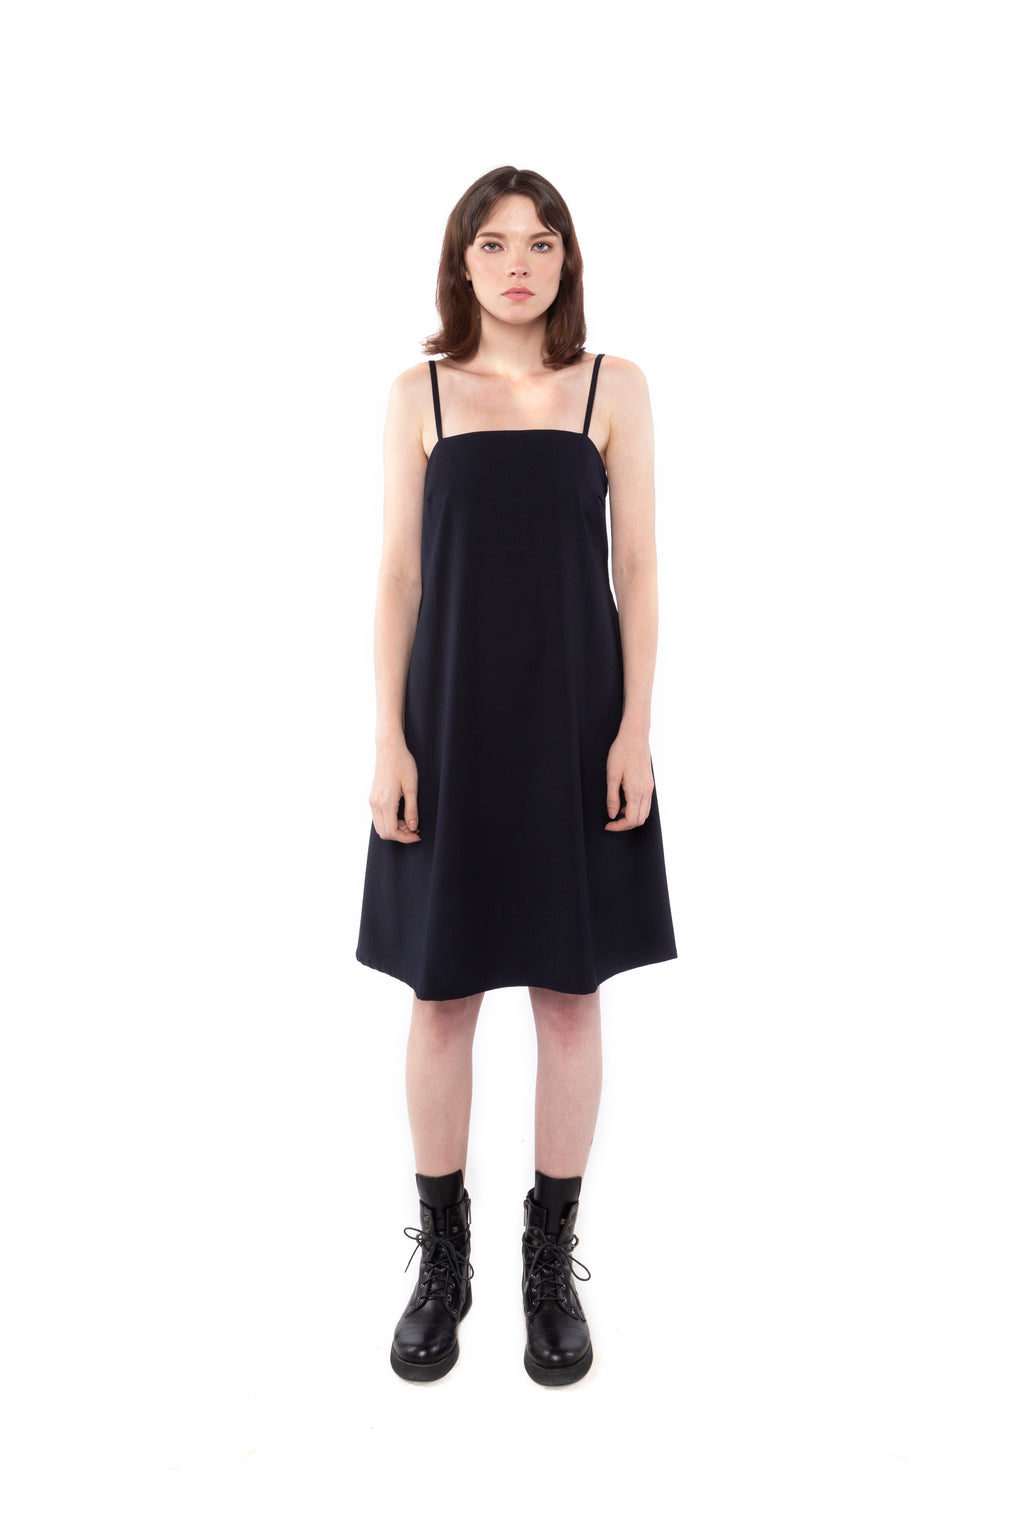 Lexington Dress - Saint York